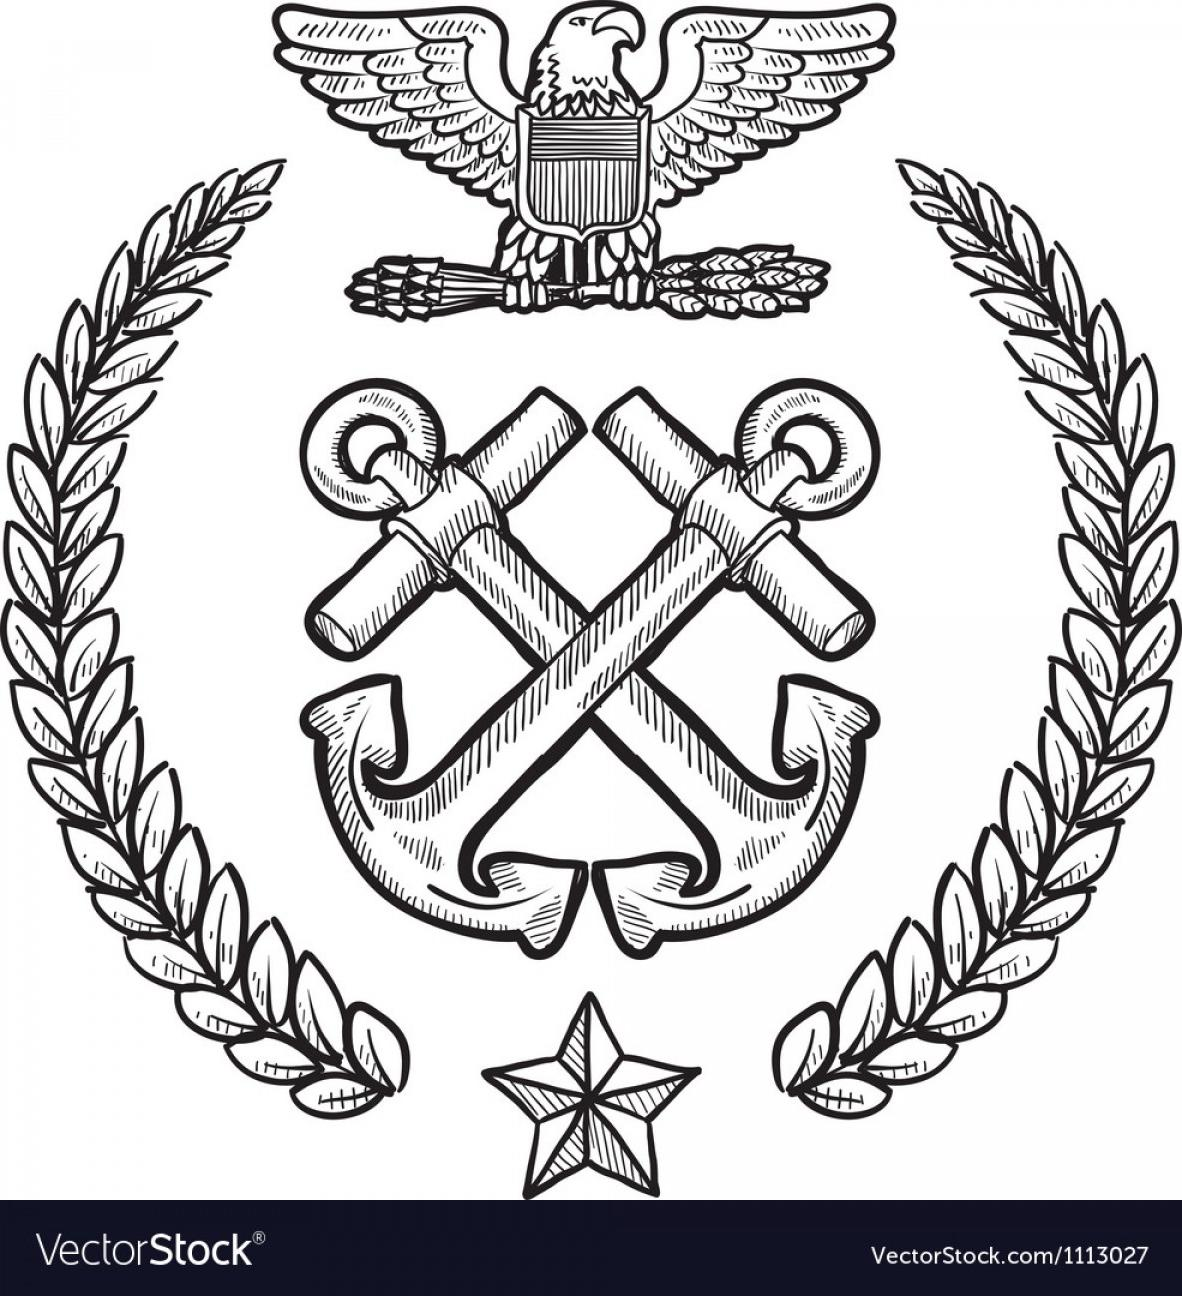 1182x1296 Best 15 Doodle Us Military Wreath Navy Vector Images